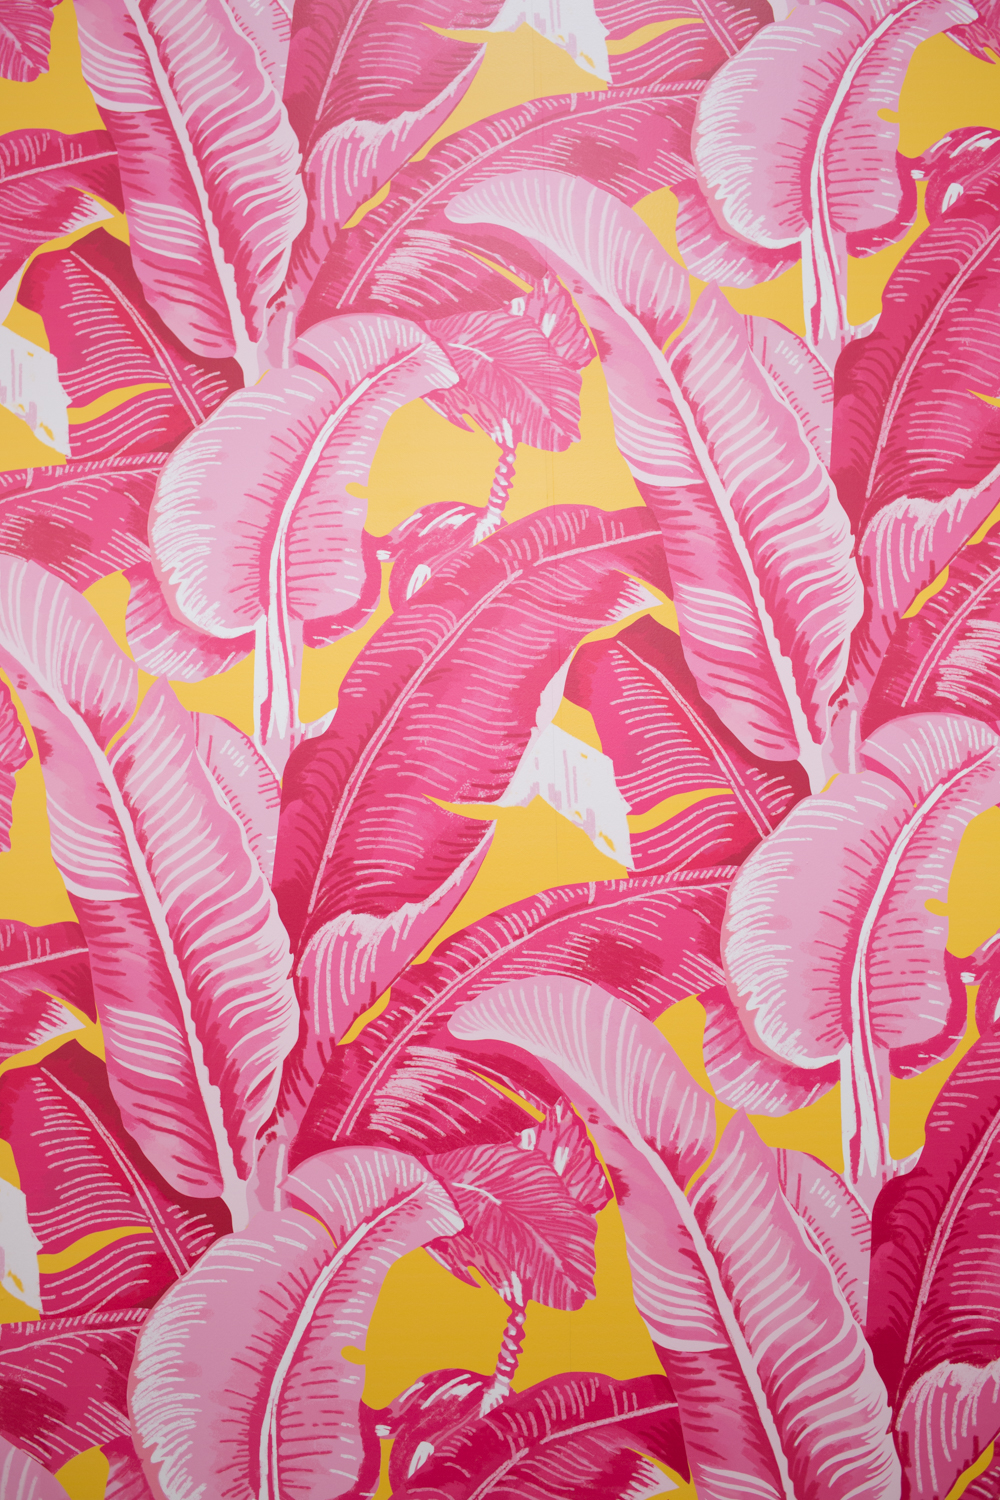 The prettiest palm print wallpaper I've ever seen. And I just found out that my insta-friend @space.ram designed it so I love it even more!